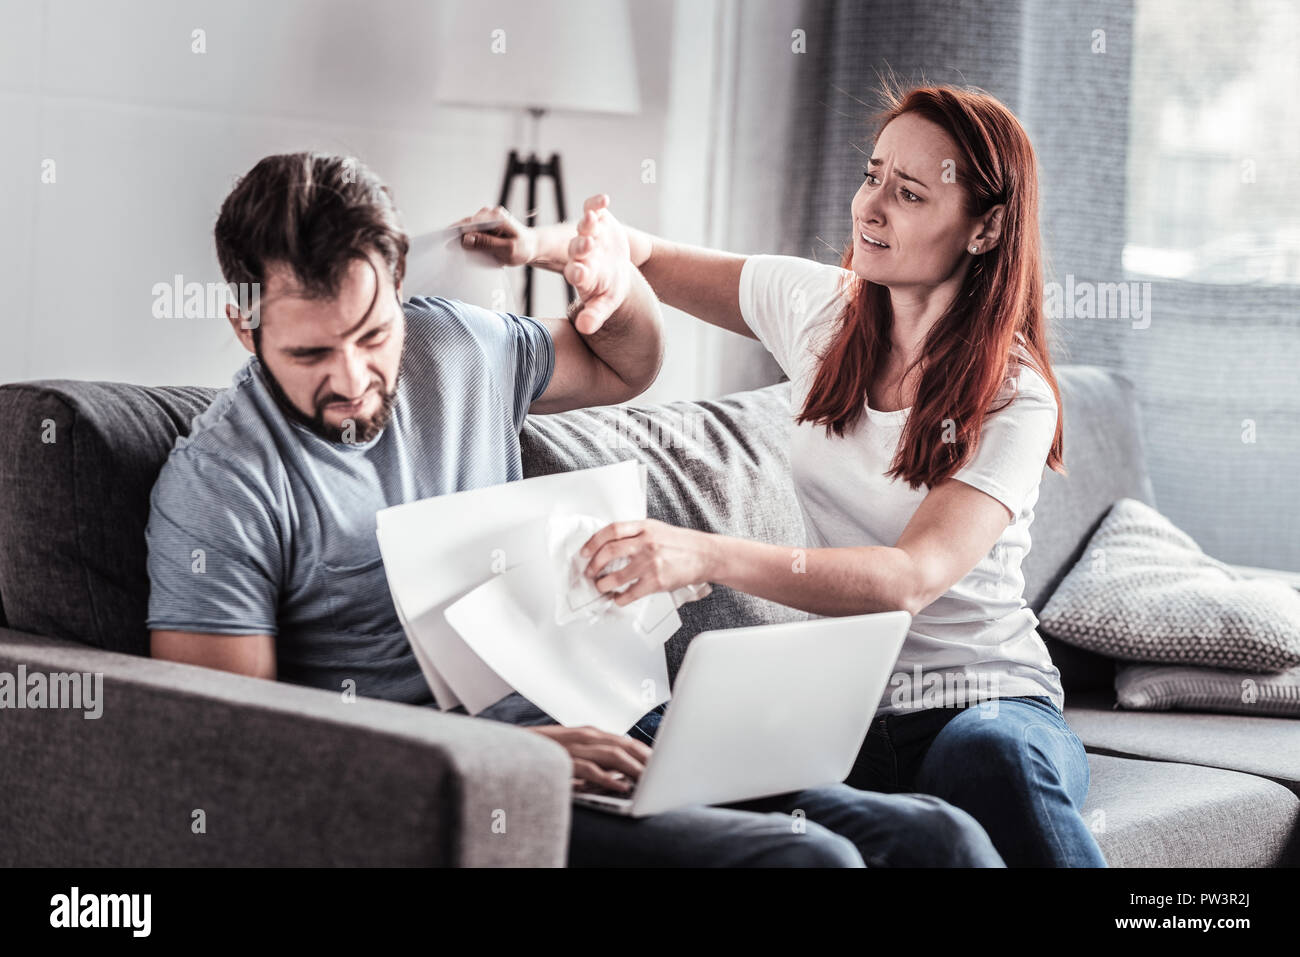 Nice unhappy couple having an argument - Stock Image